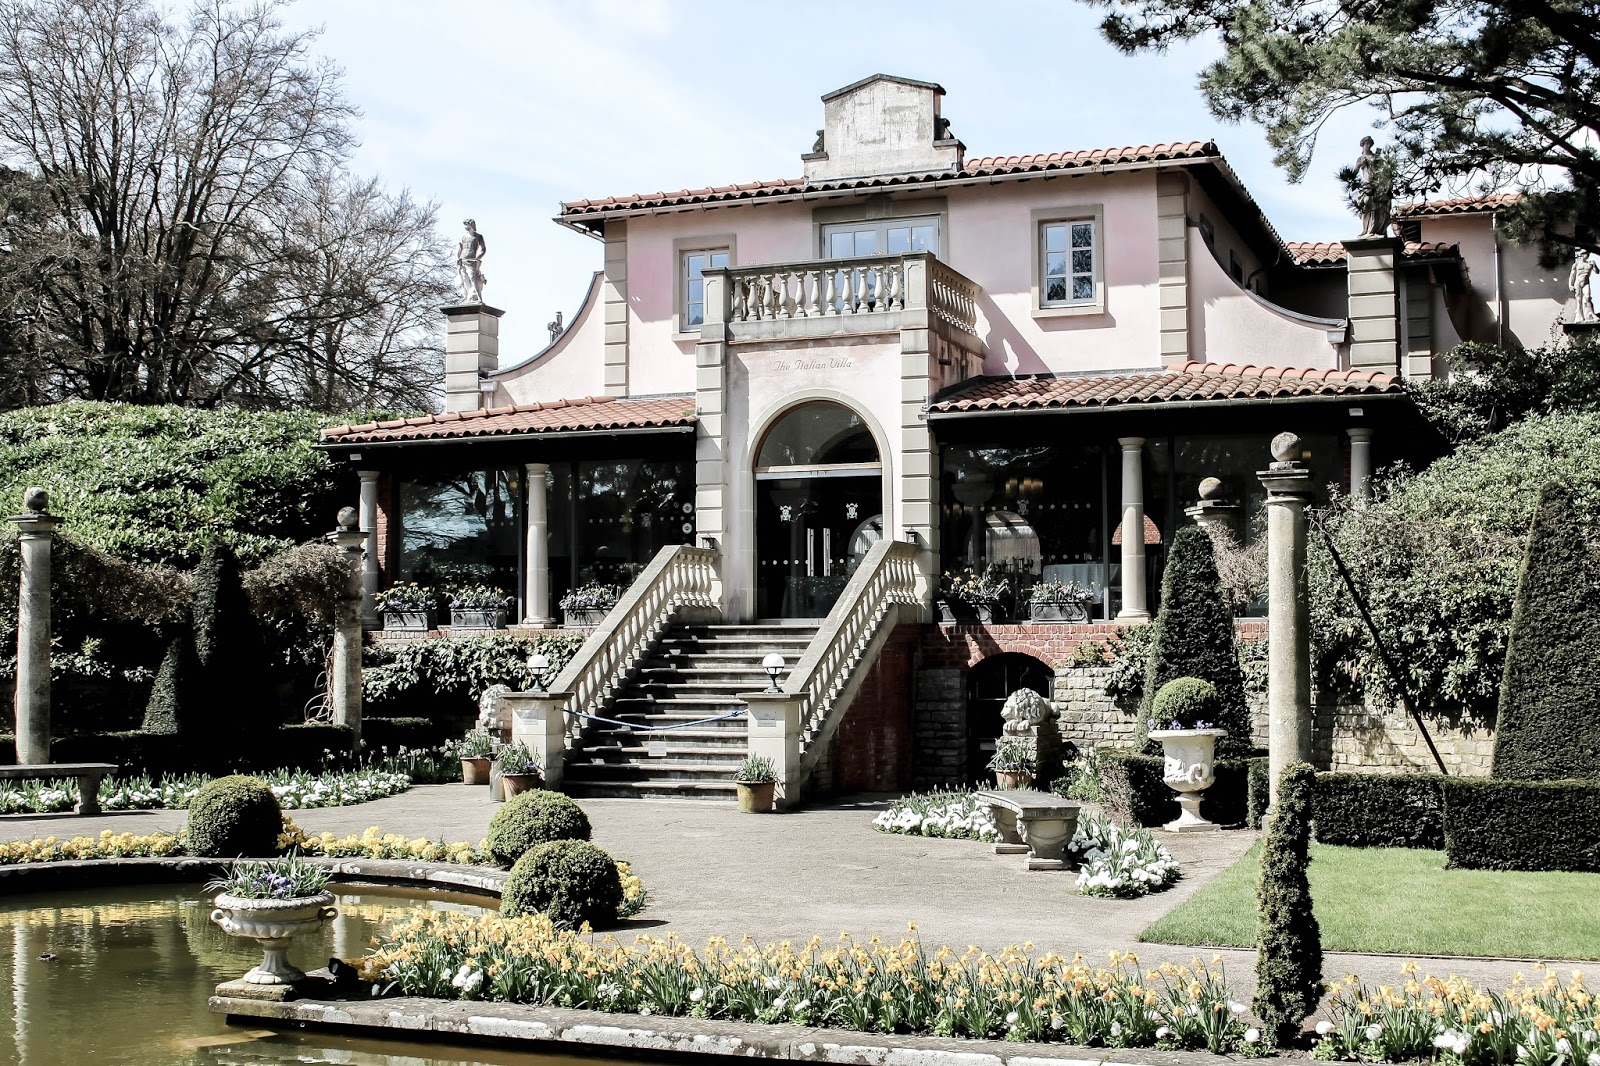 Compton Acres Pink Italianate Villa in Summer